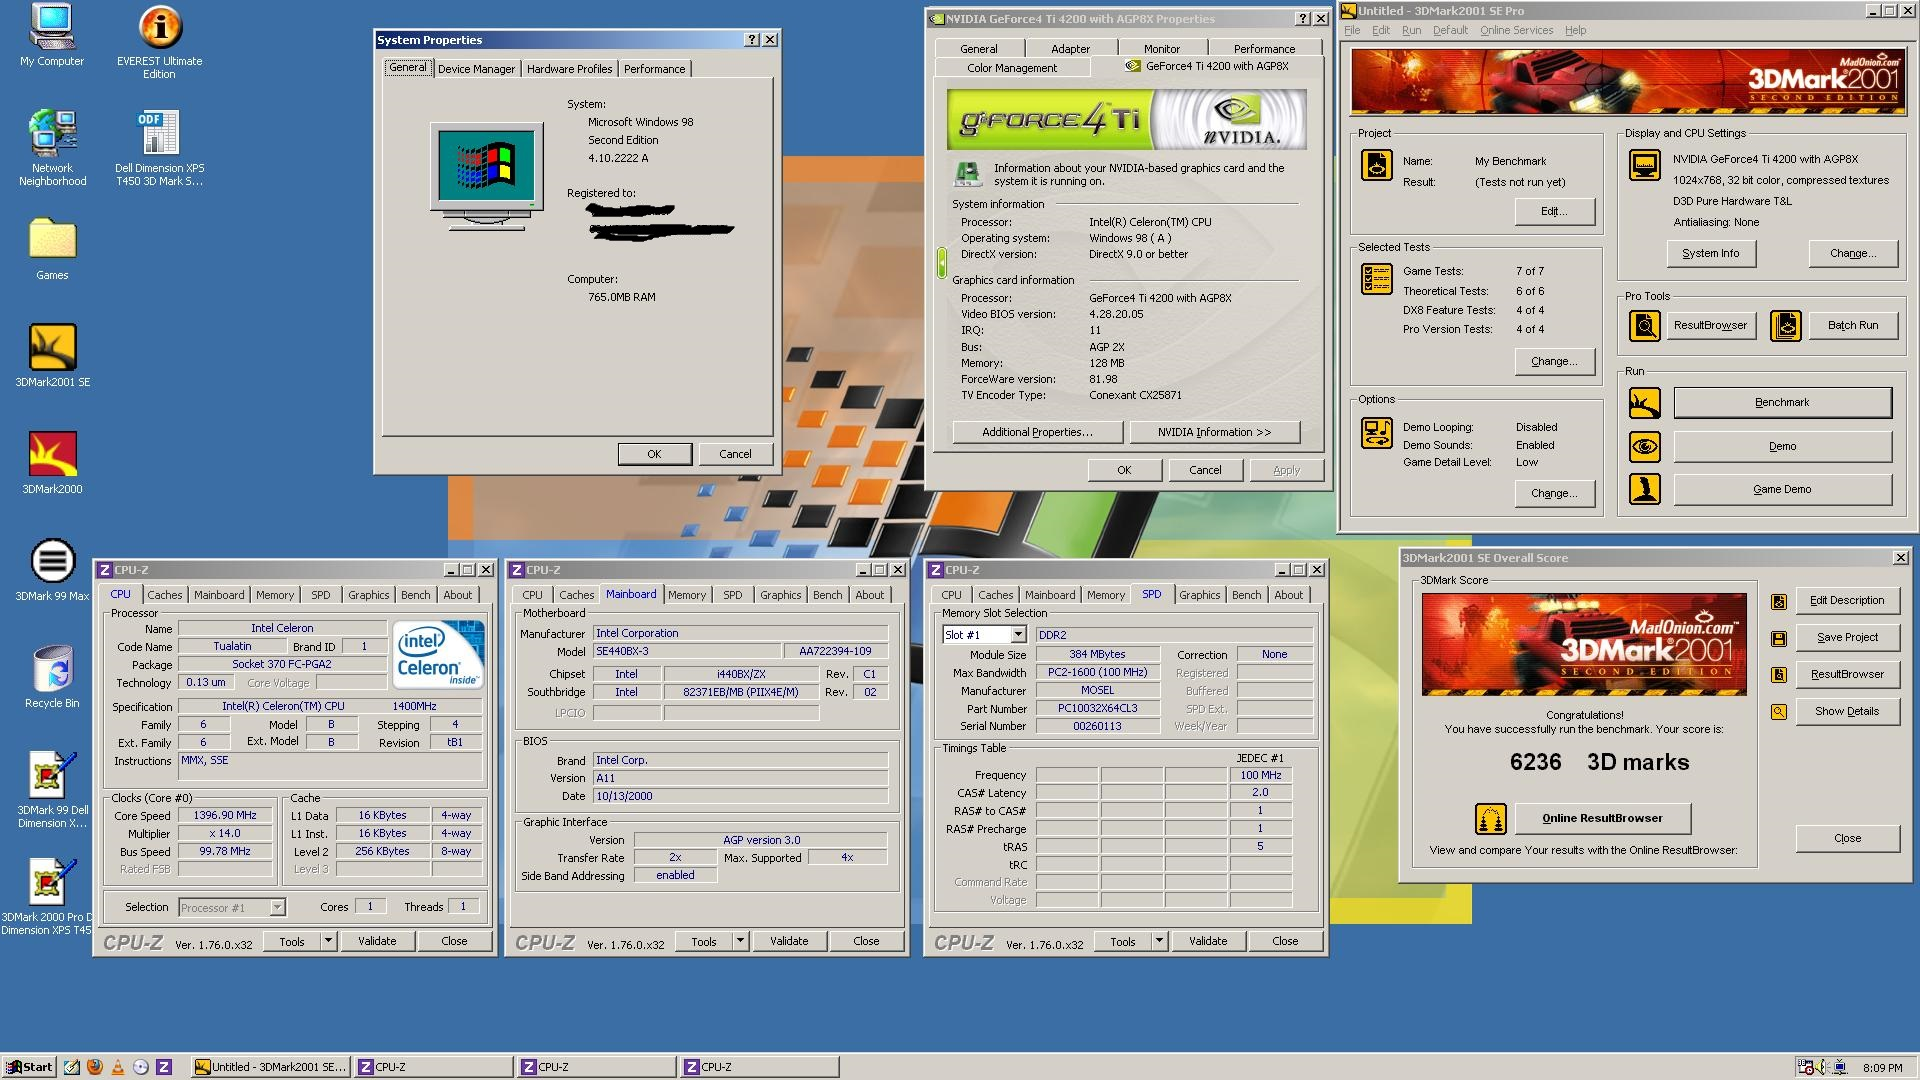 Celeron 1.4GHz, 768MB RAM, Geforce4 Ti4200, 120GB HDD, Windows 98SE.jpg